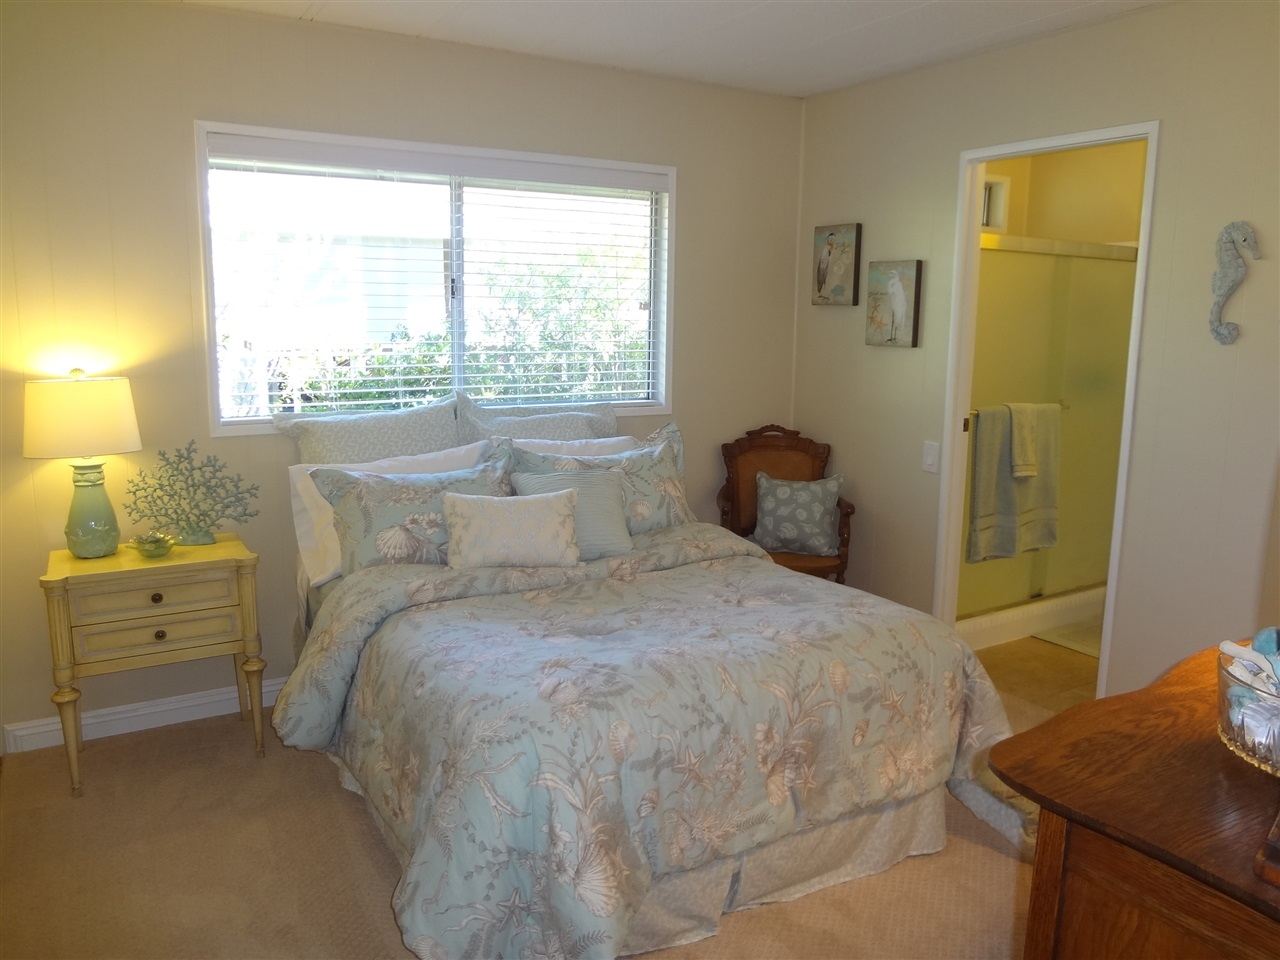 Photo 10: OUT OF AREA Manufactured Home for sale : 2 bedrooms : 133 Mira Del Sur in San Clemente